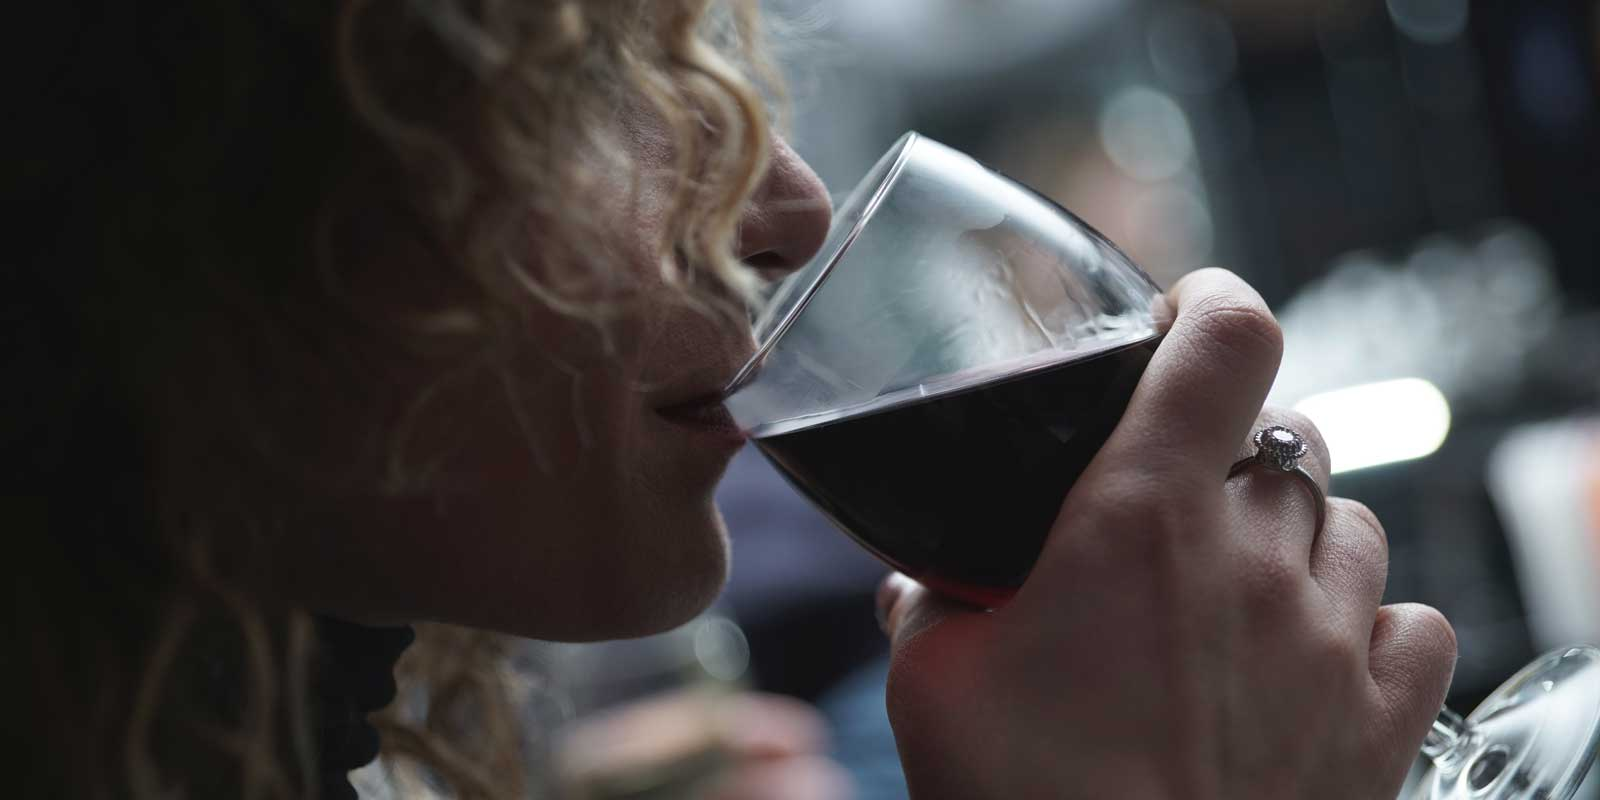 Closeup photo of a woman drinking a glass of red wine